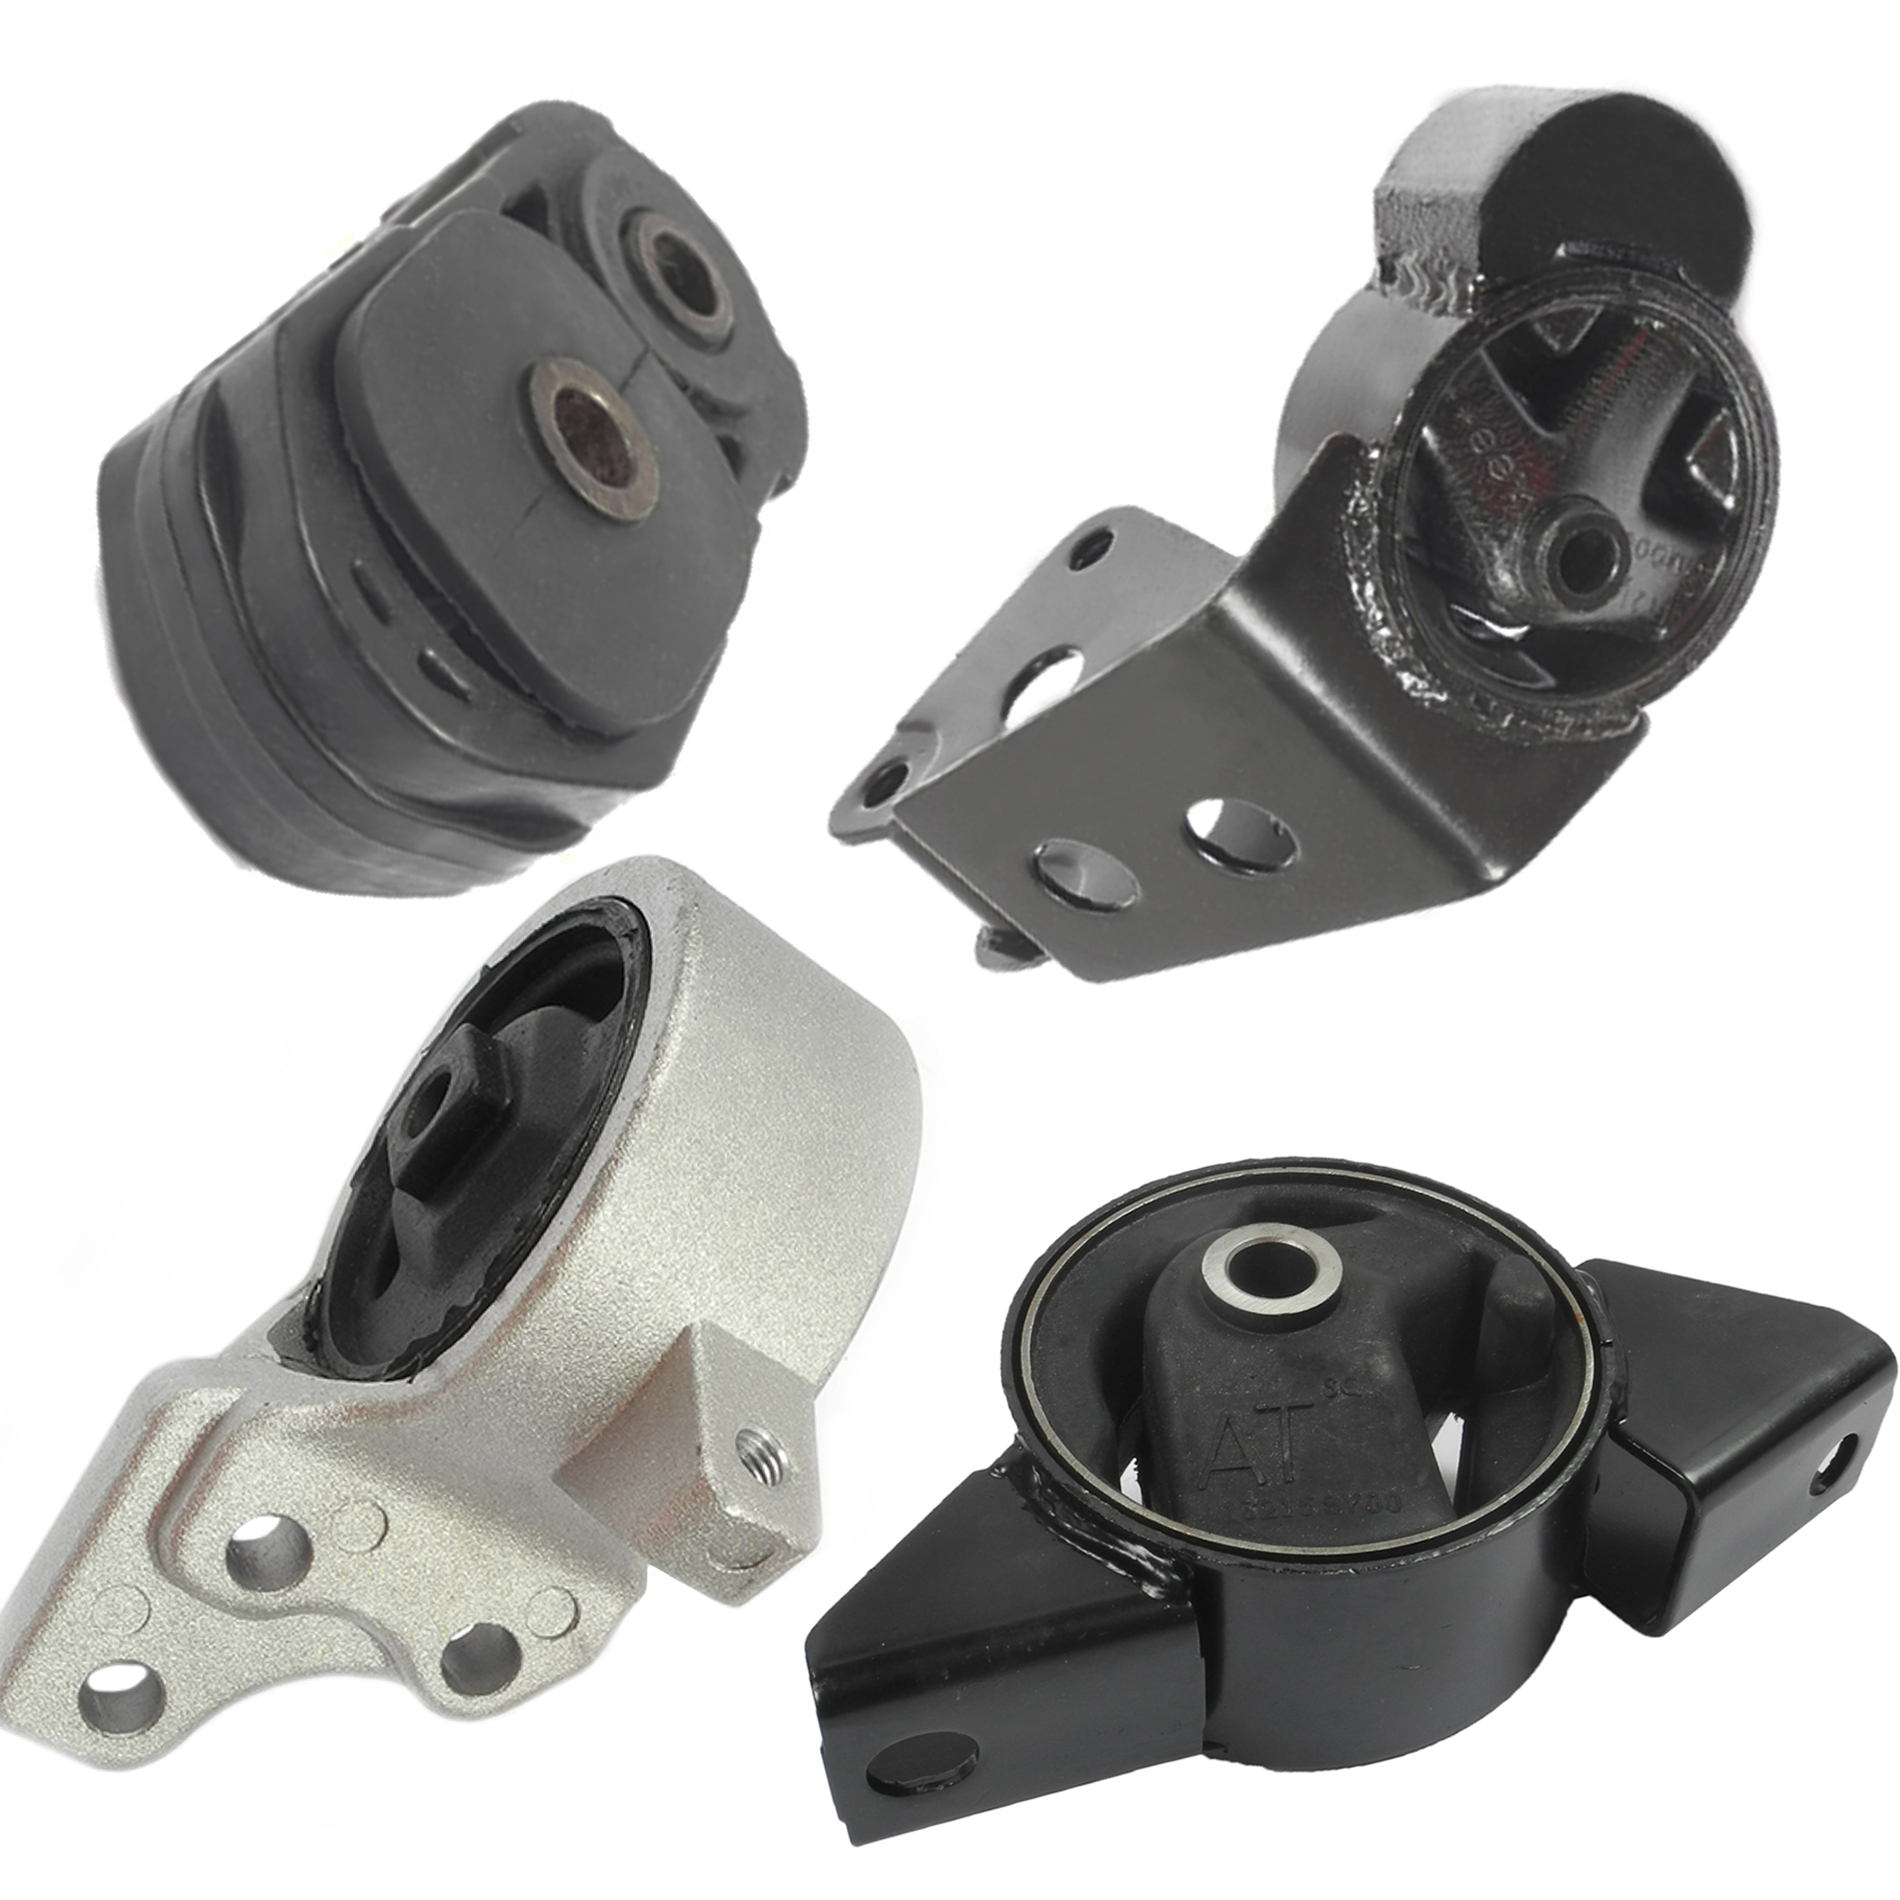 hight resolution of details about for 1995 99 nissan sentra 1 6l fwd manual engine motor transmission mount 3pcs